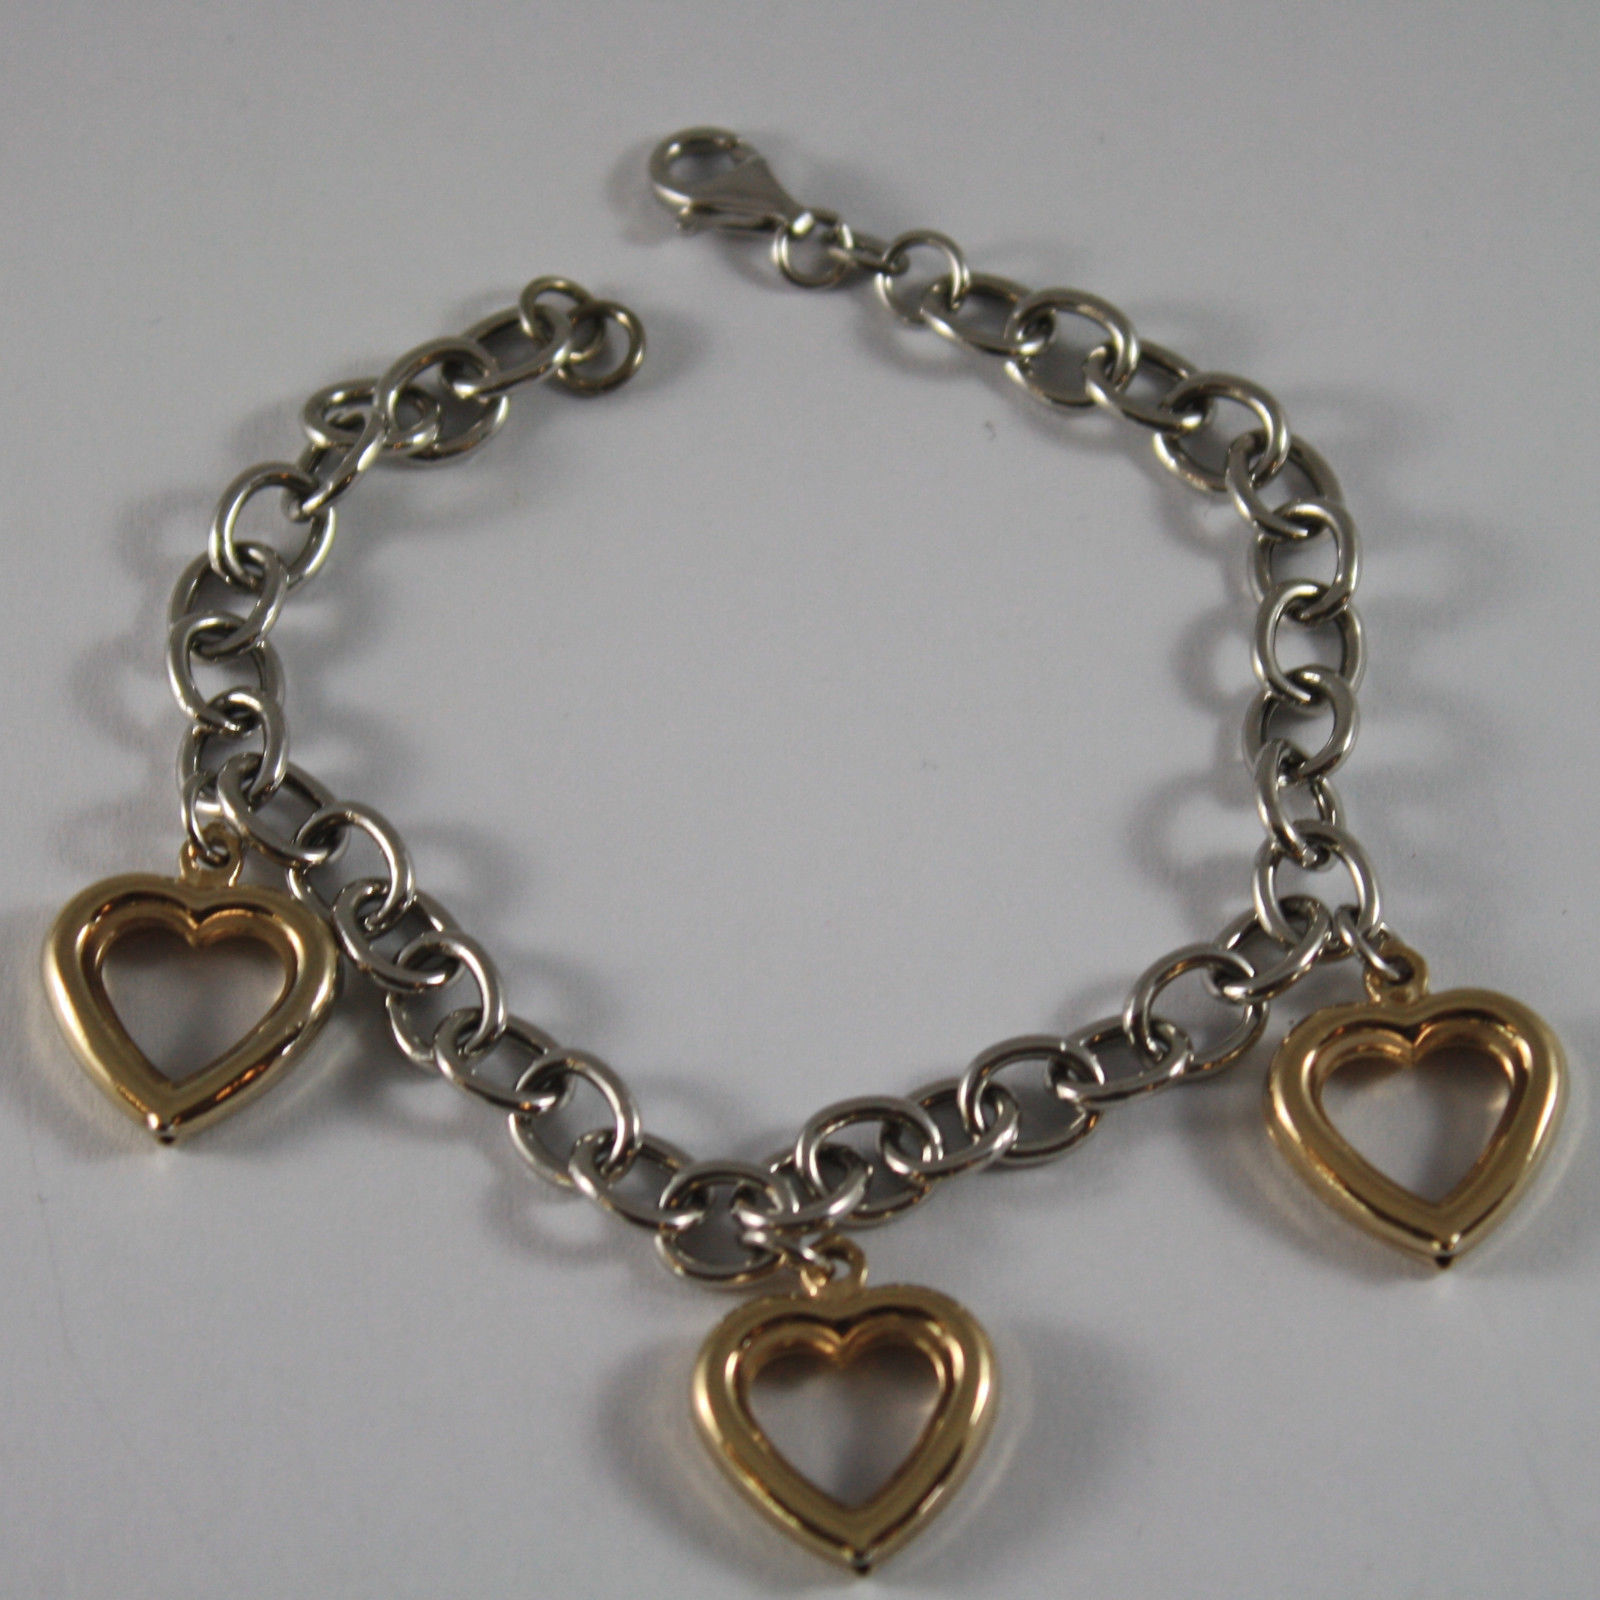 .925 RHODIUM SILVER BRACELET WITH YELLOW GOLD PLATED HEARTS